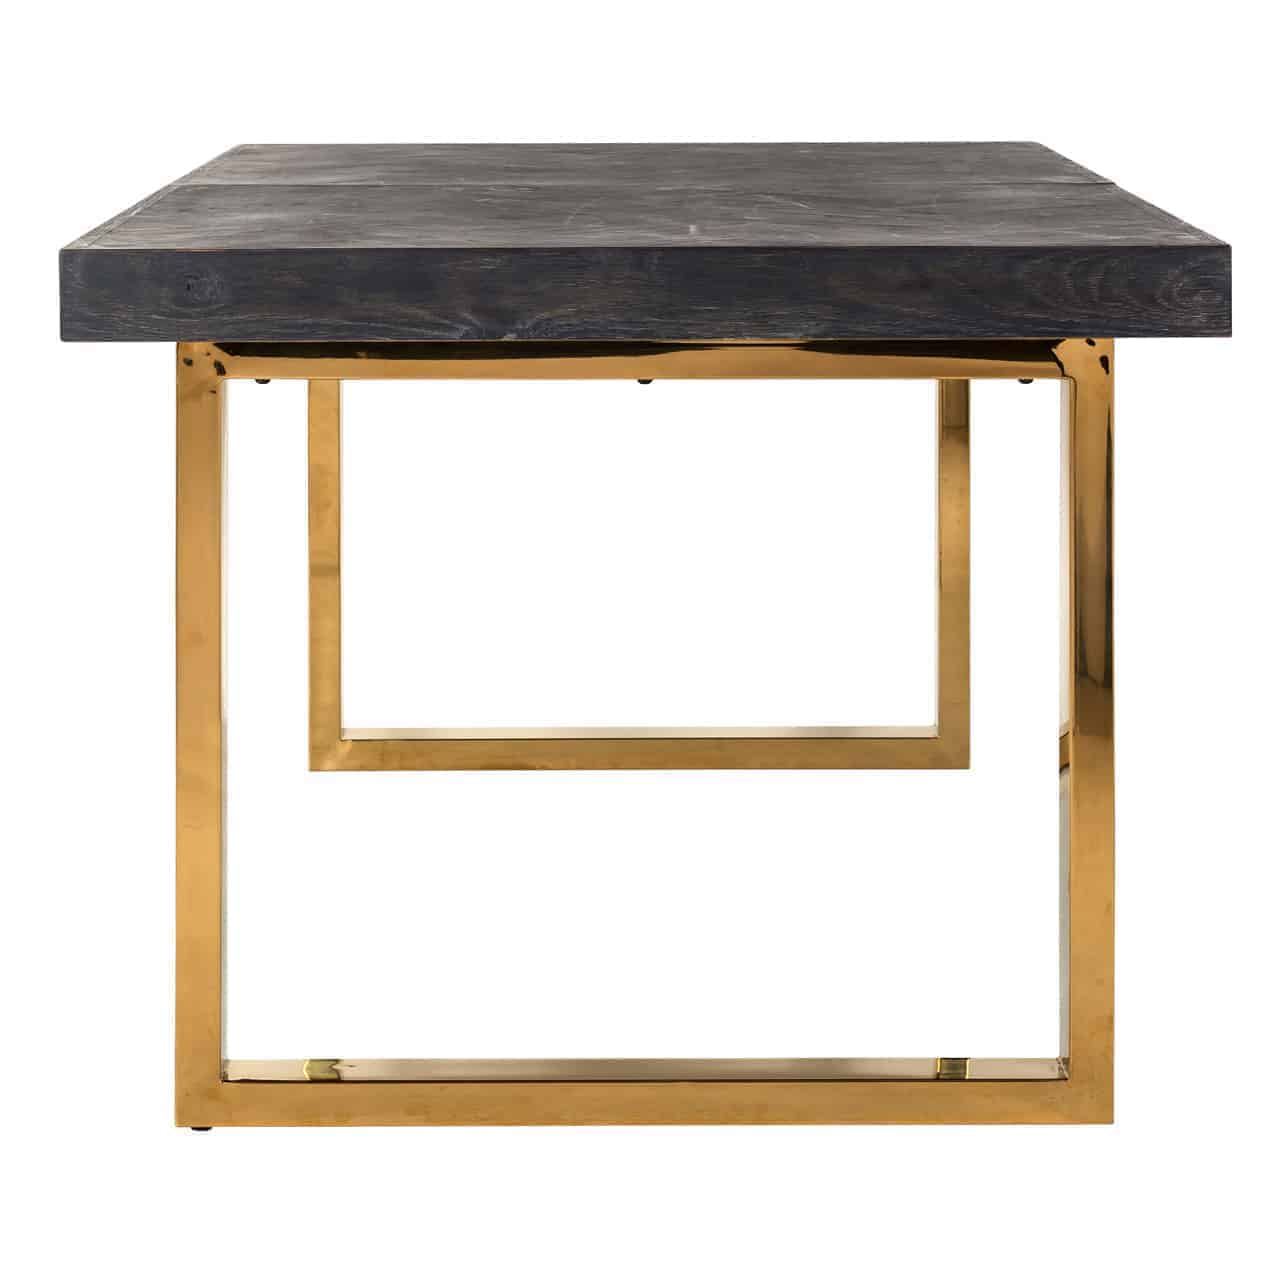 Extension Table Blackbone Gold 195(265)